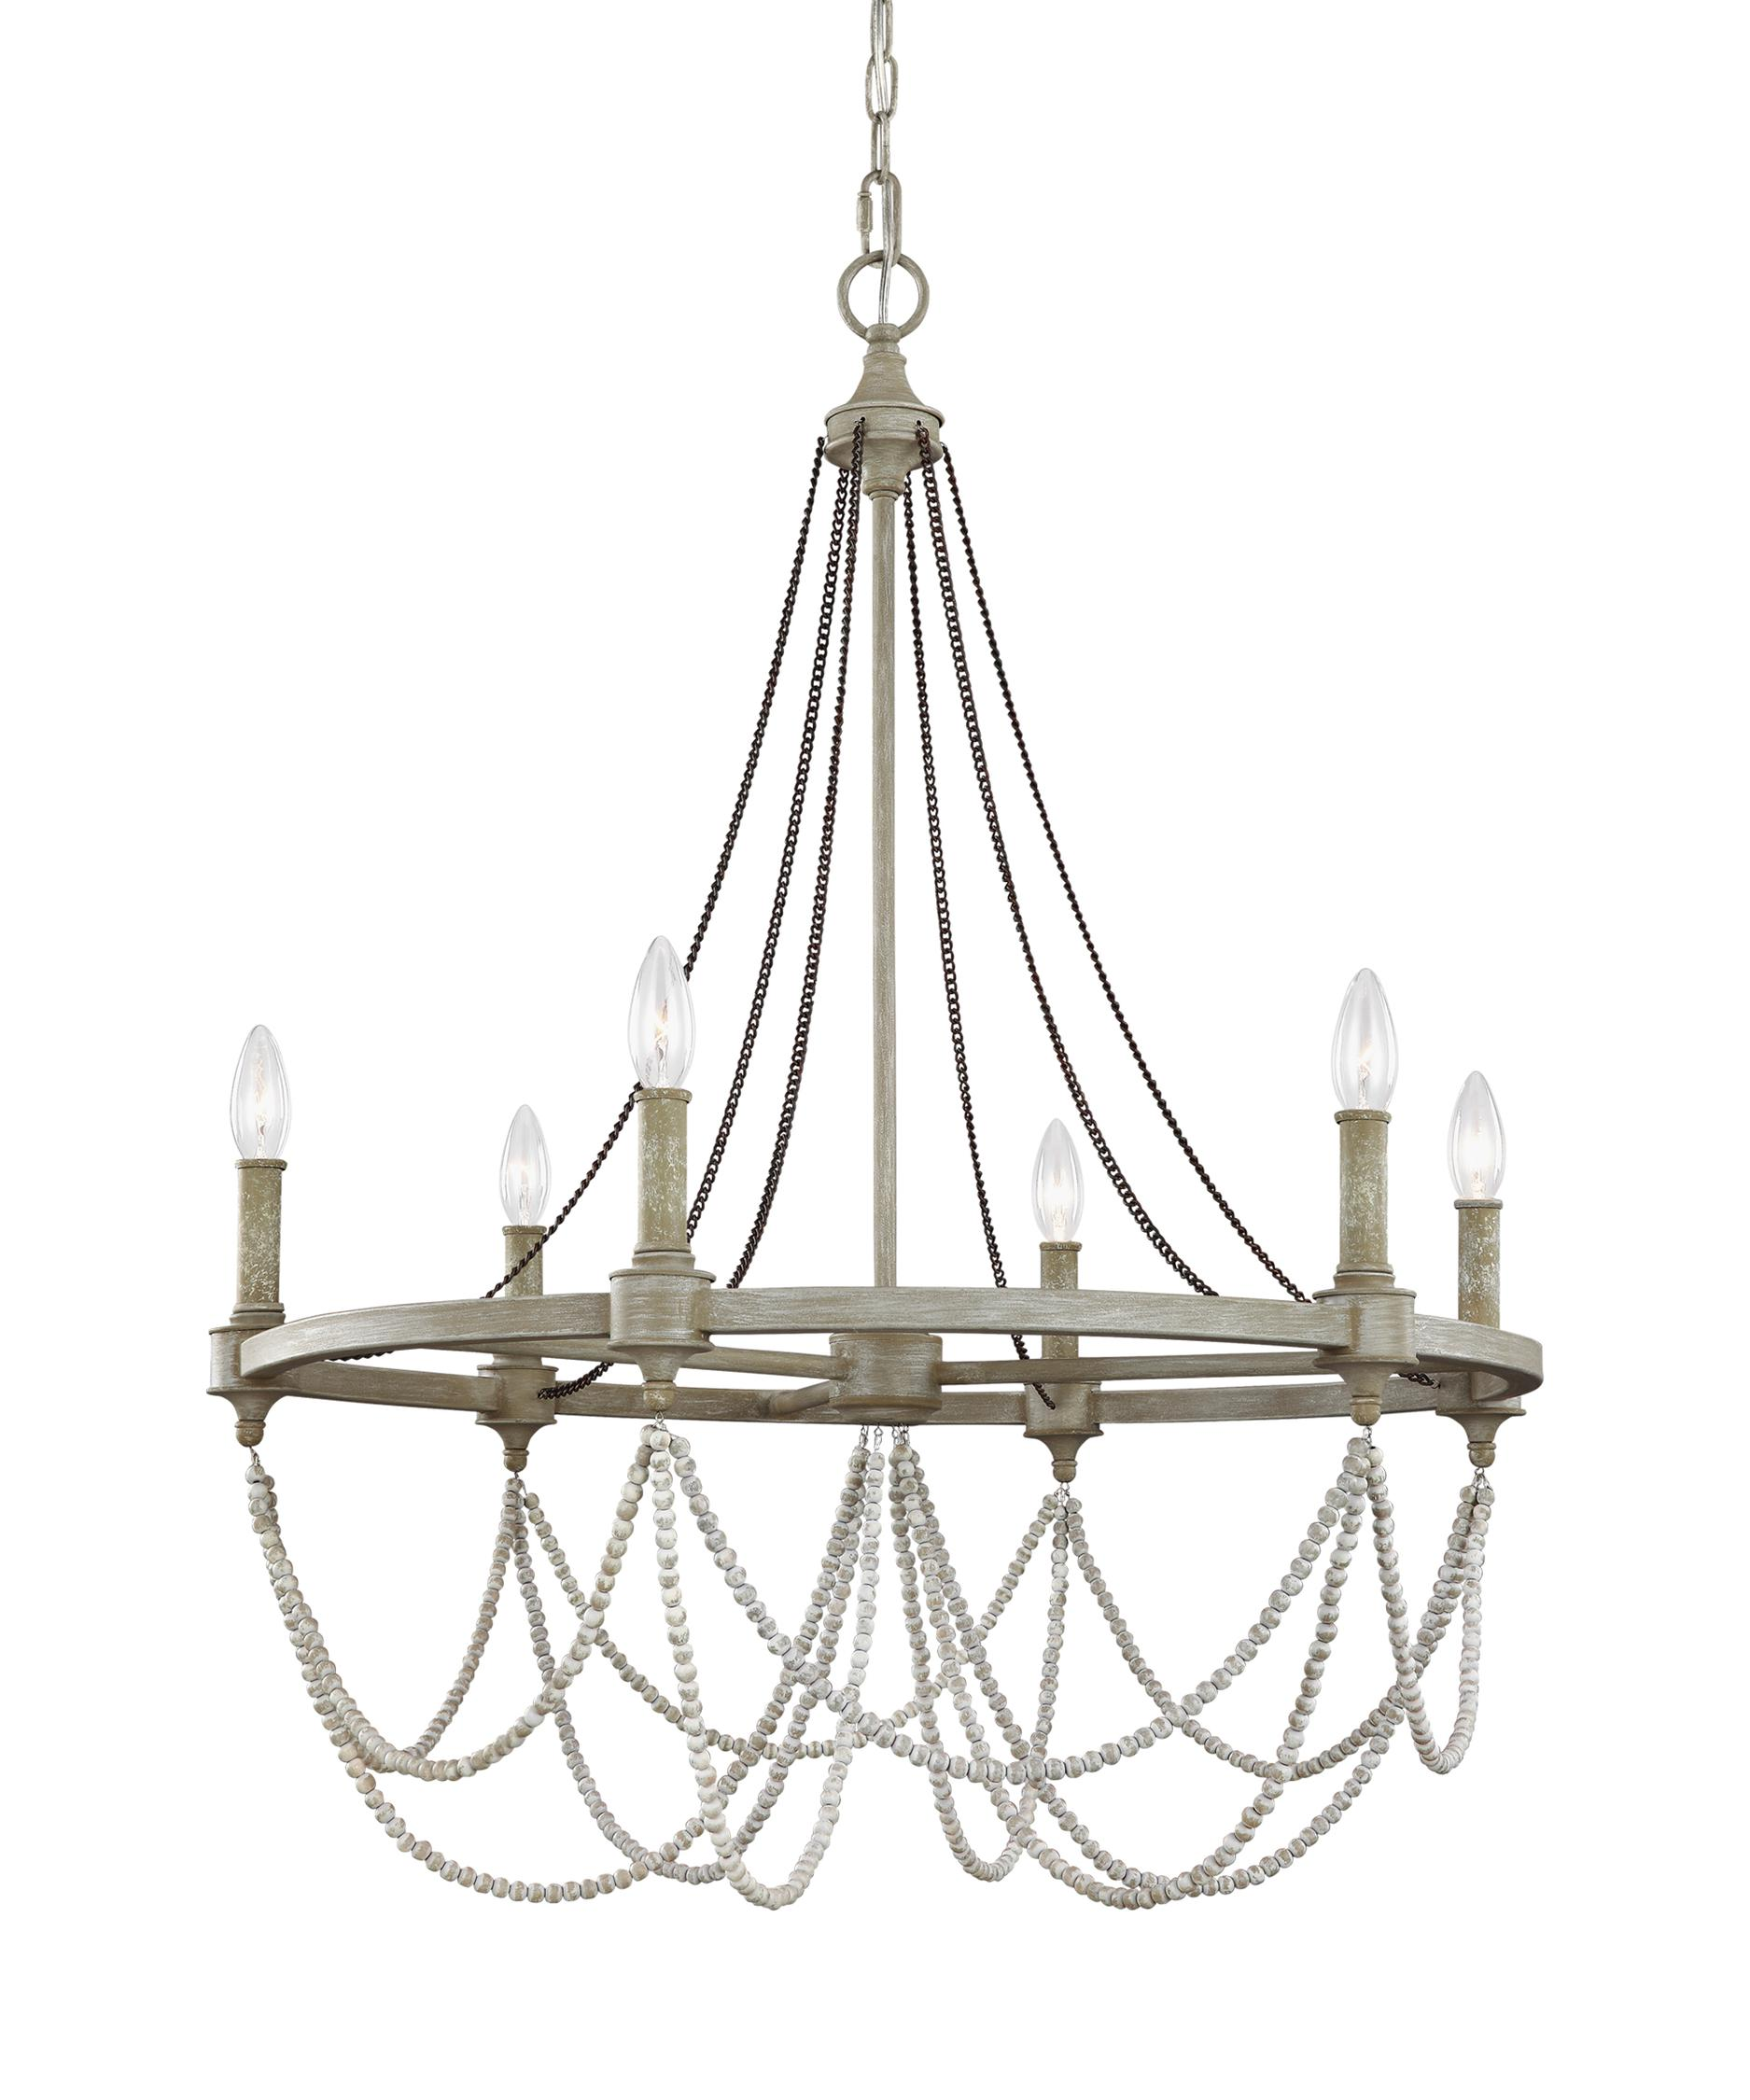 Murray Feiss Beverly 28 Inch Wide 6 Light Chandelier – Murray Feiss Chandeliers